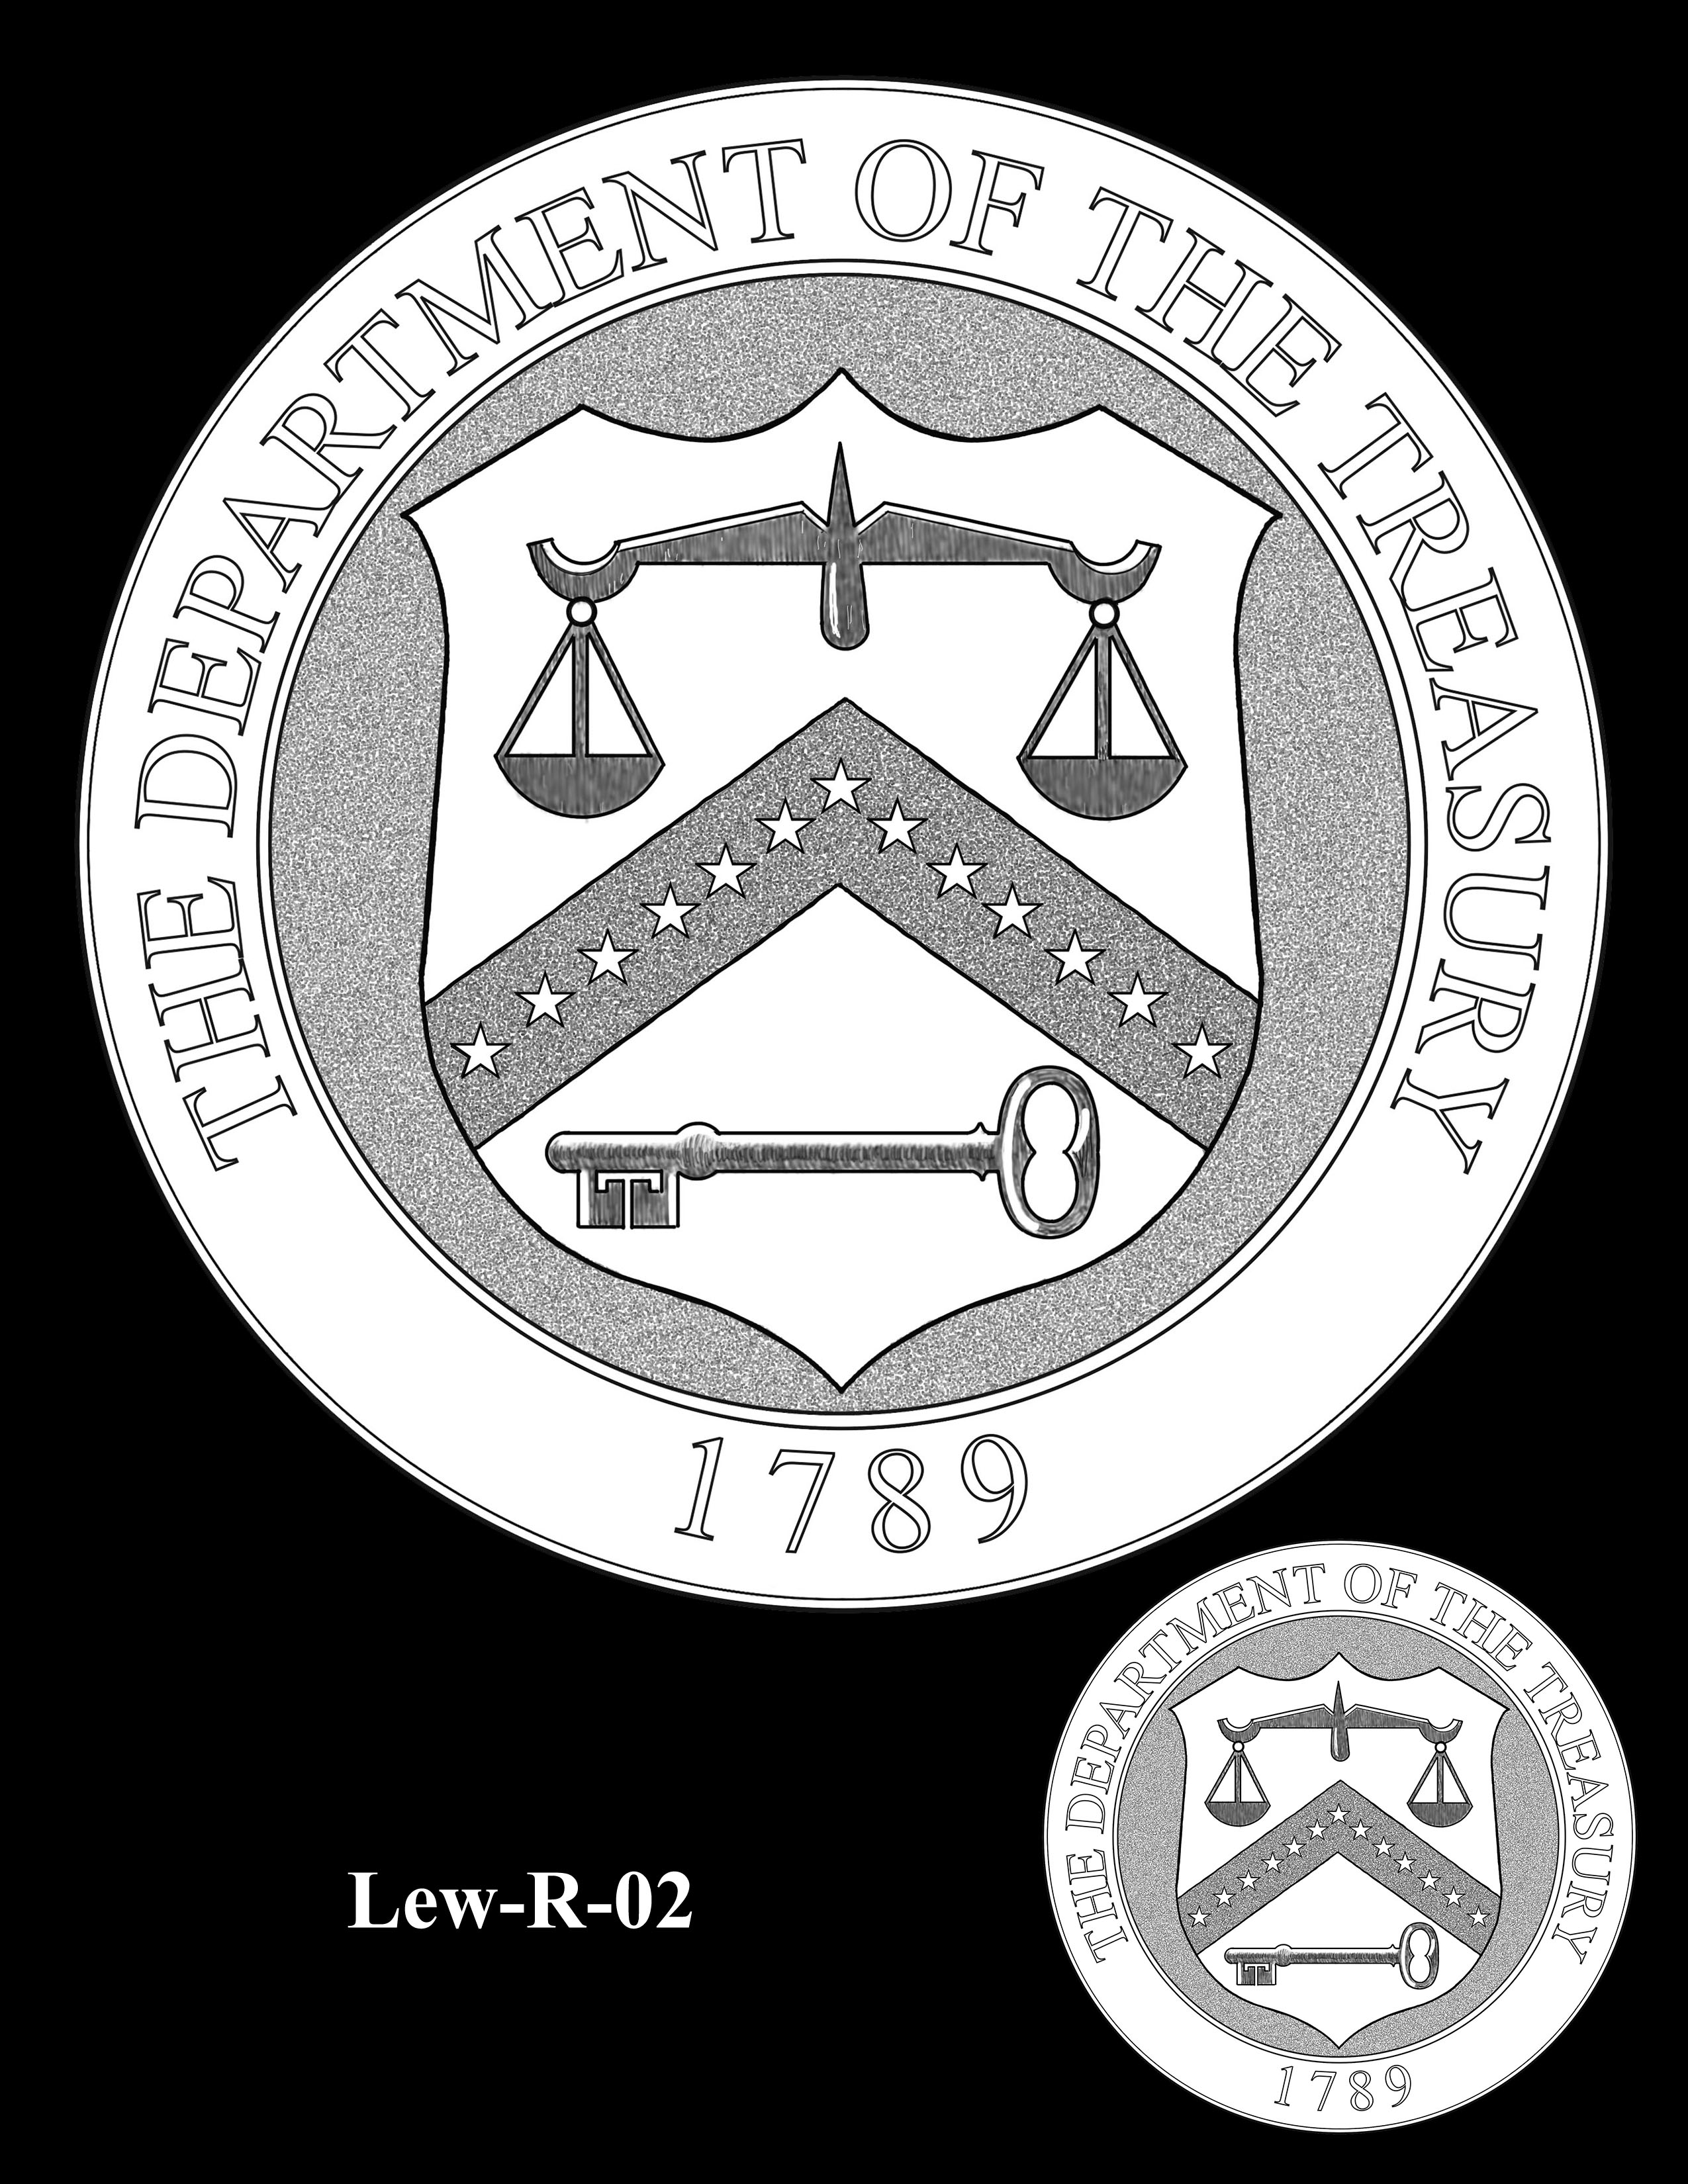 Lew-R-02 - Jacob J. Lew Secretary of the Treasury Medal Reverse